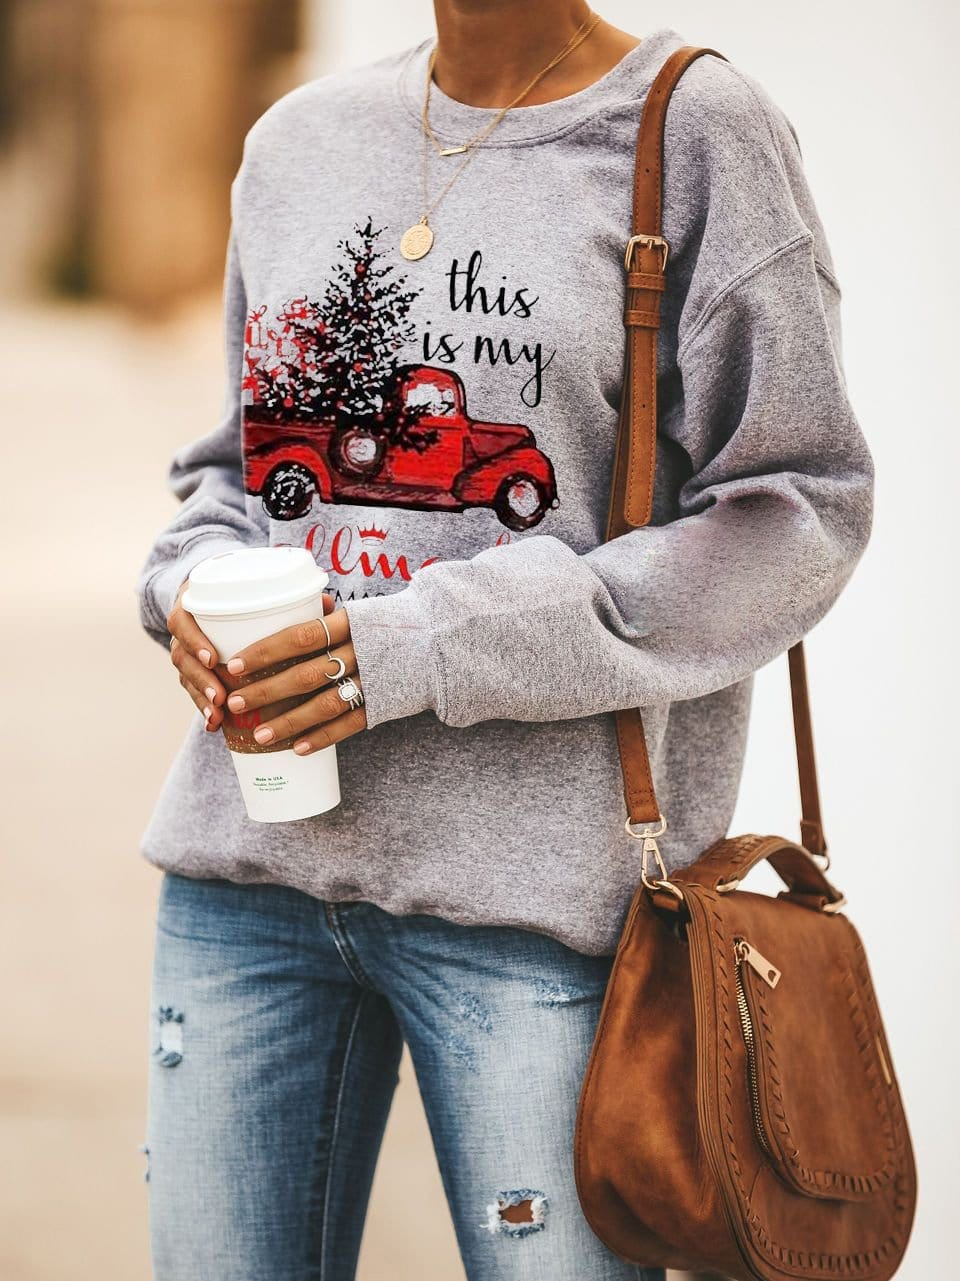 Hallmark Christmas Movies Watching Sweatshirt